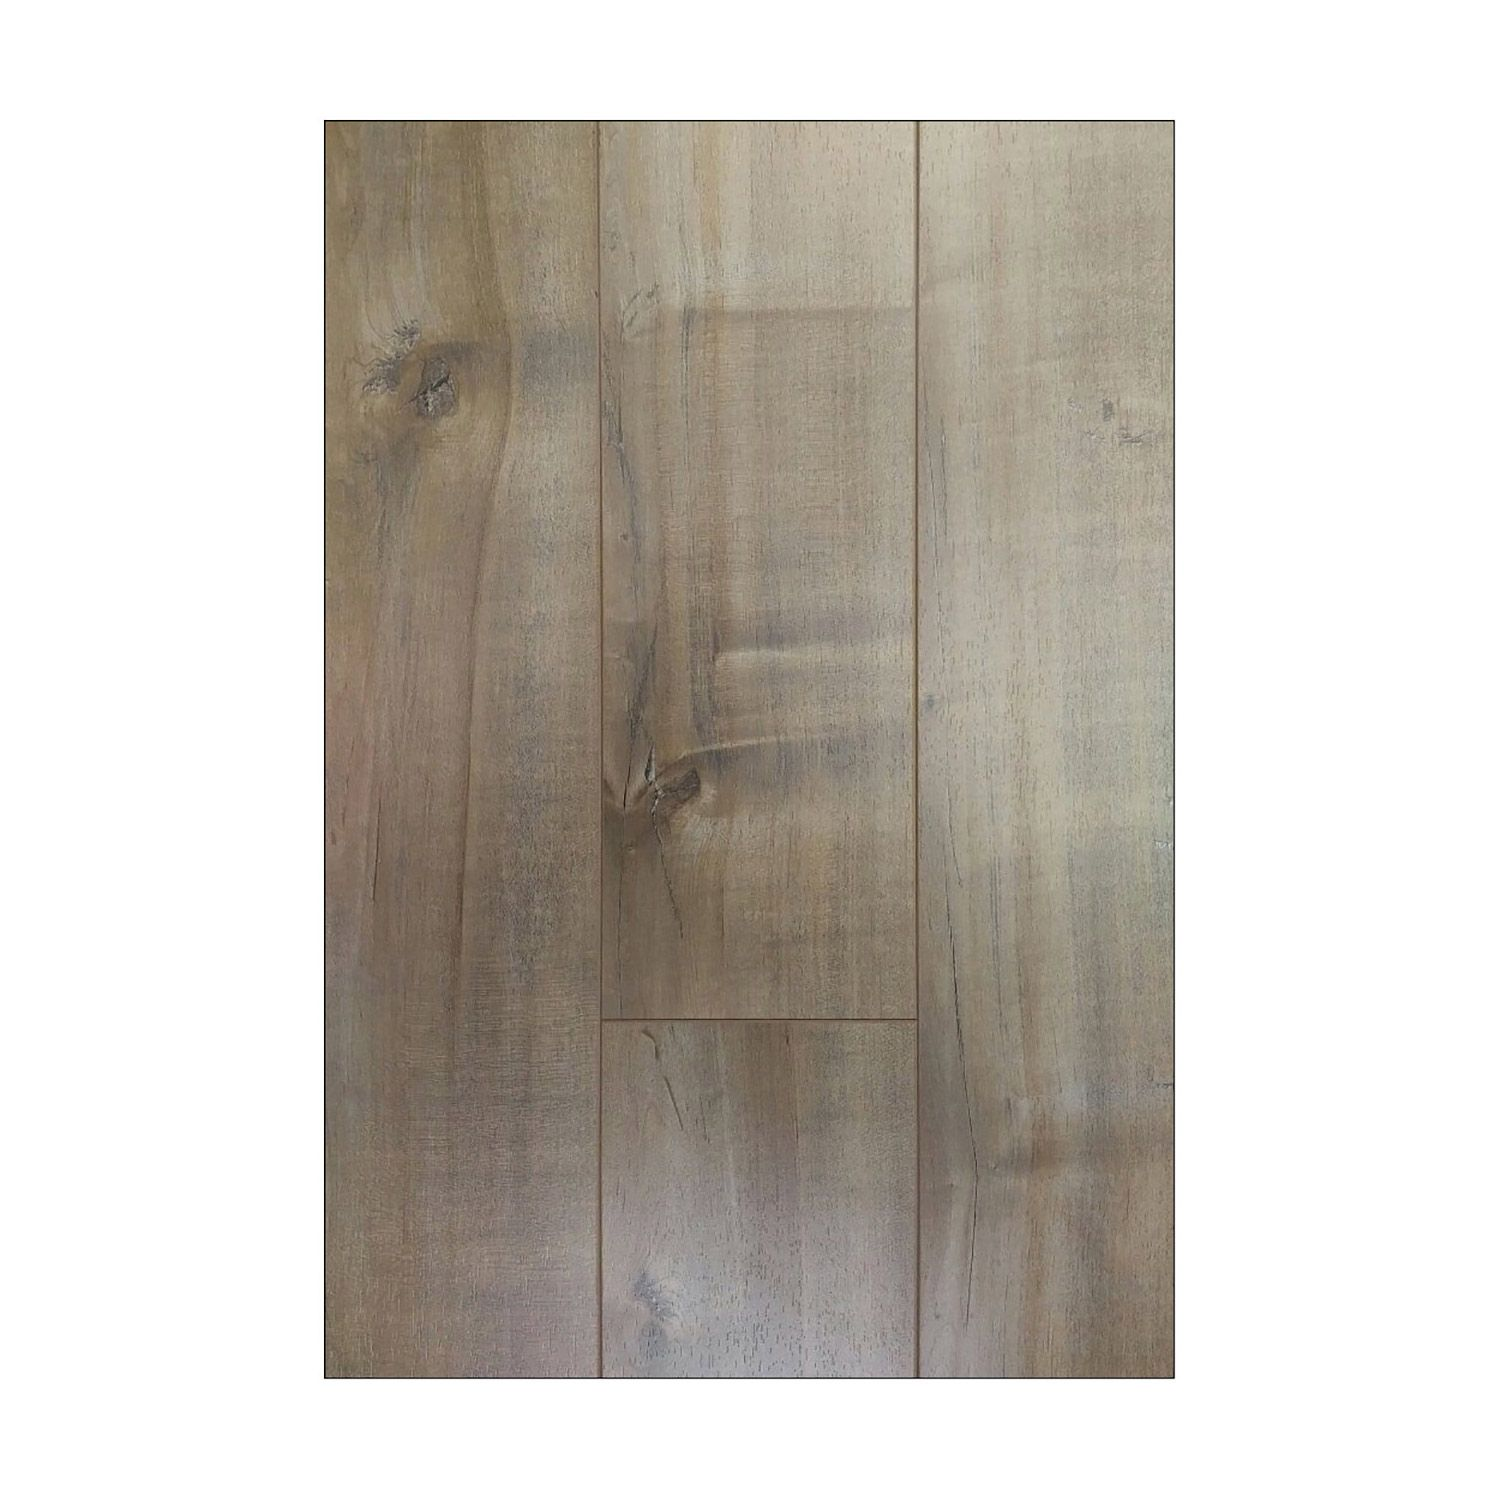 12 3 Mm Everest Nepal Laminate Flooring Online Only Deals Kent Building Supplies